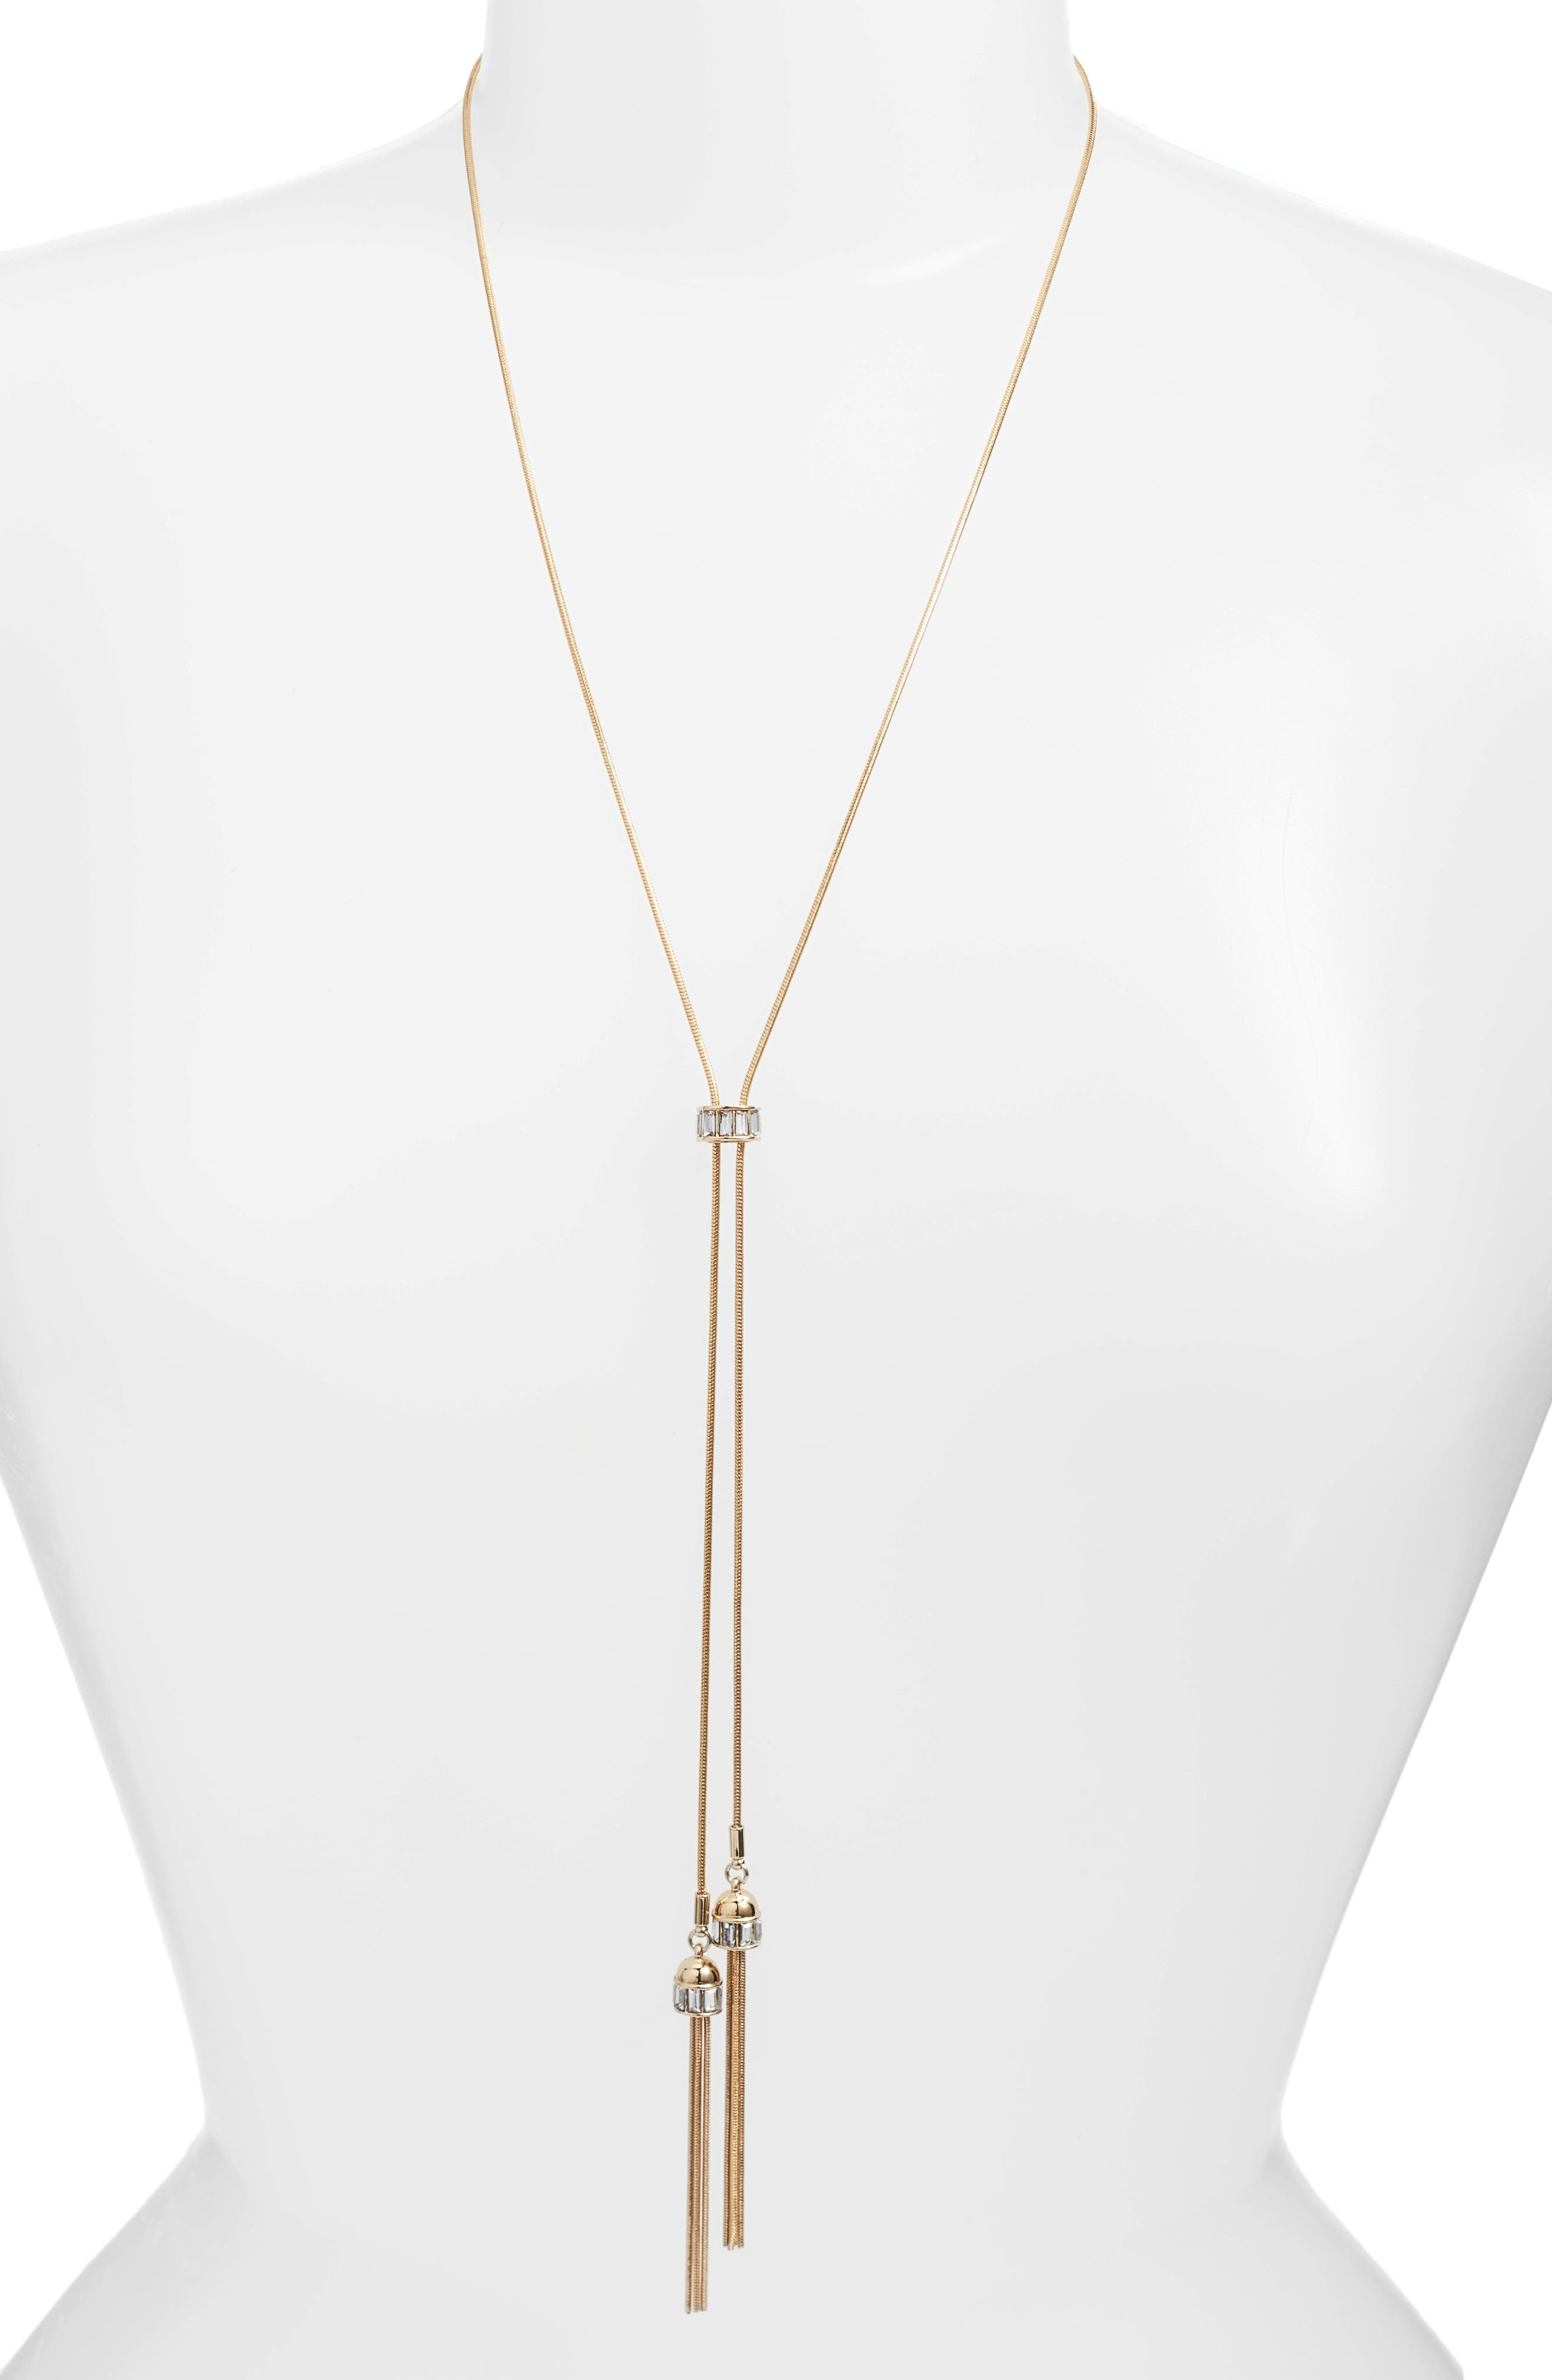 Alternate Image 1 Selected - Vince Camuto Long Pendant Necklace